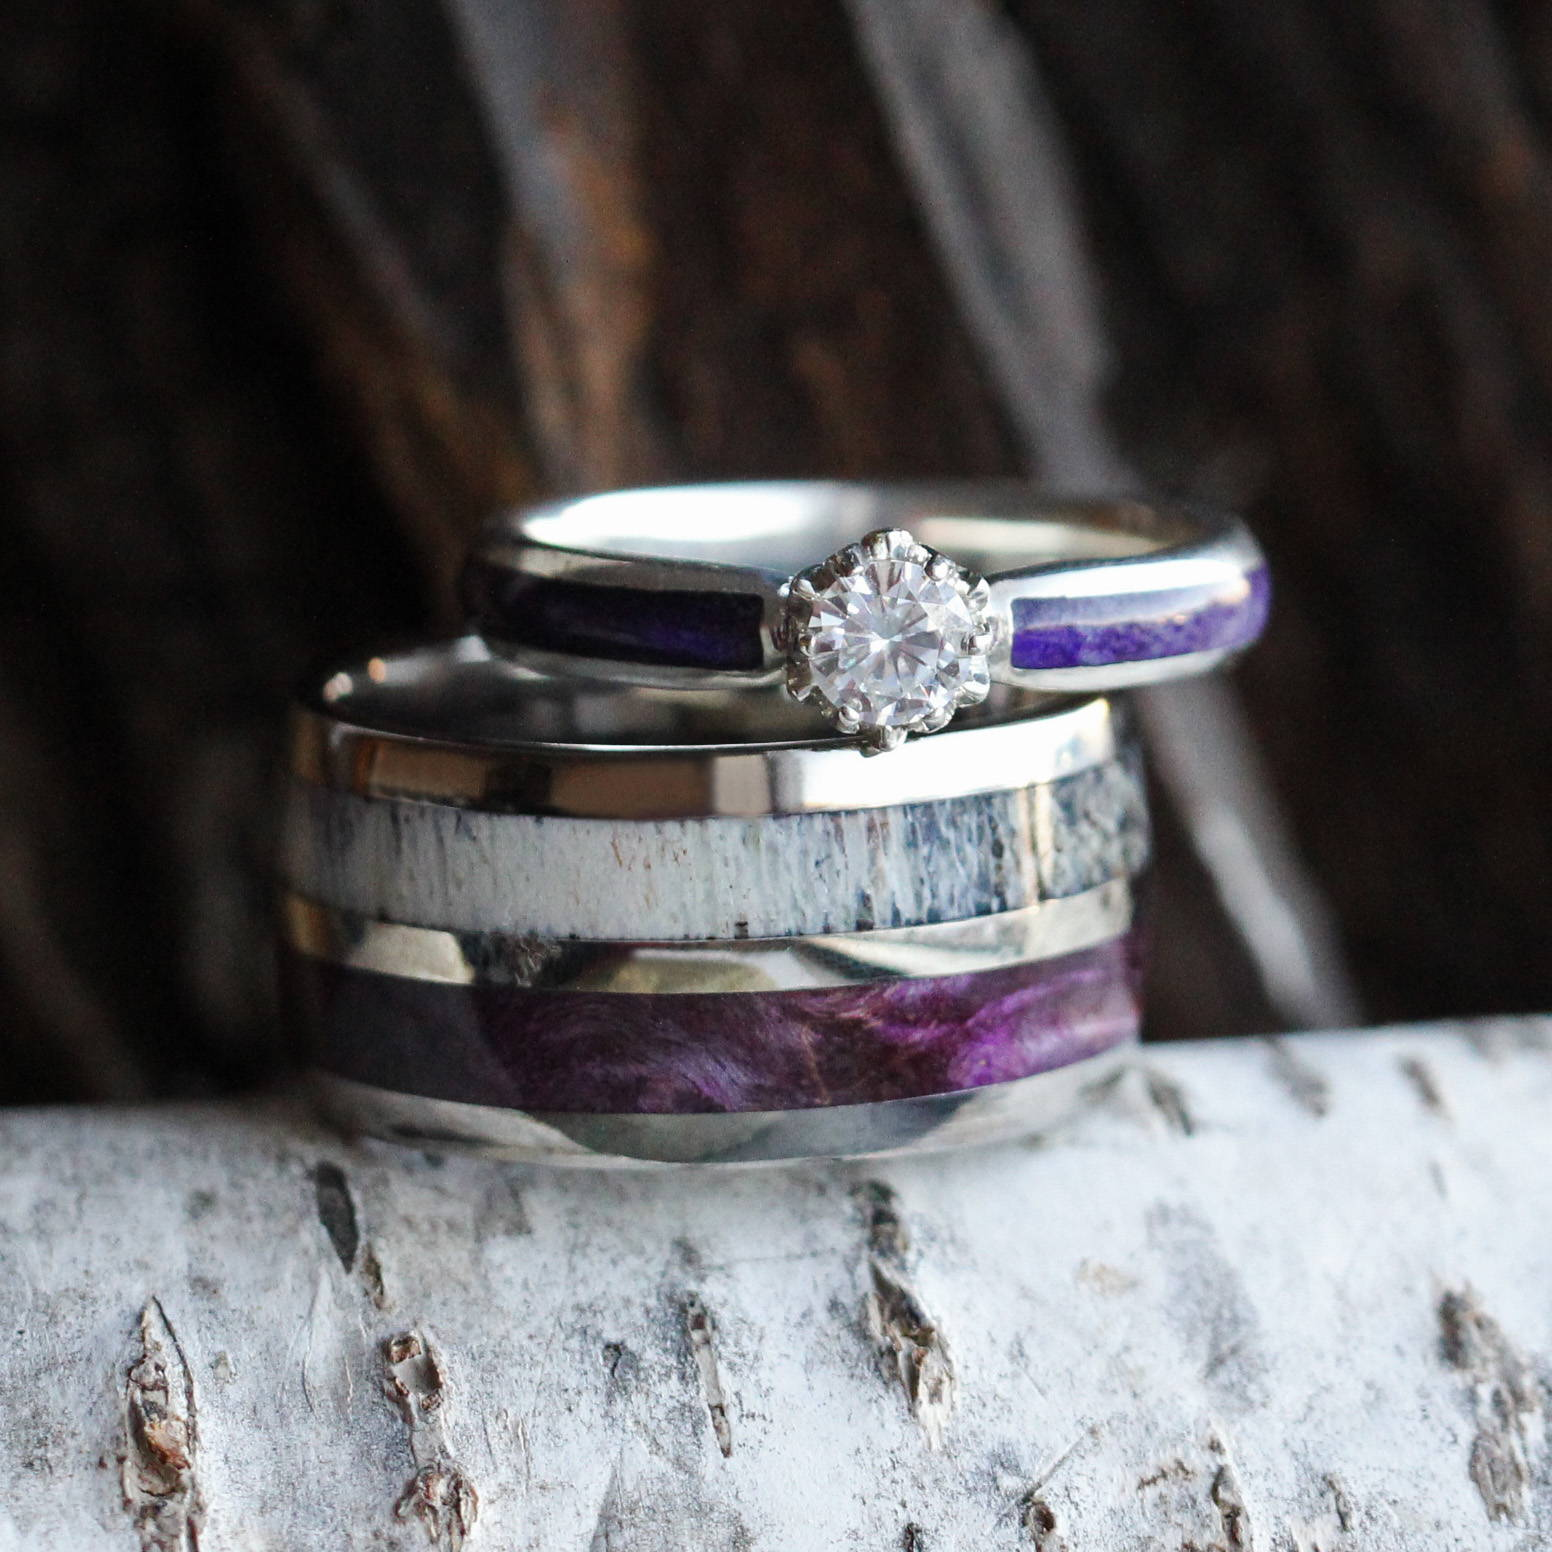 PURPLE BOX ELDER BURL WEDDING RING SET, MOISSANITE ENGAGEMENT RING AND ANTLER BAND